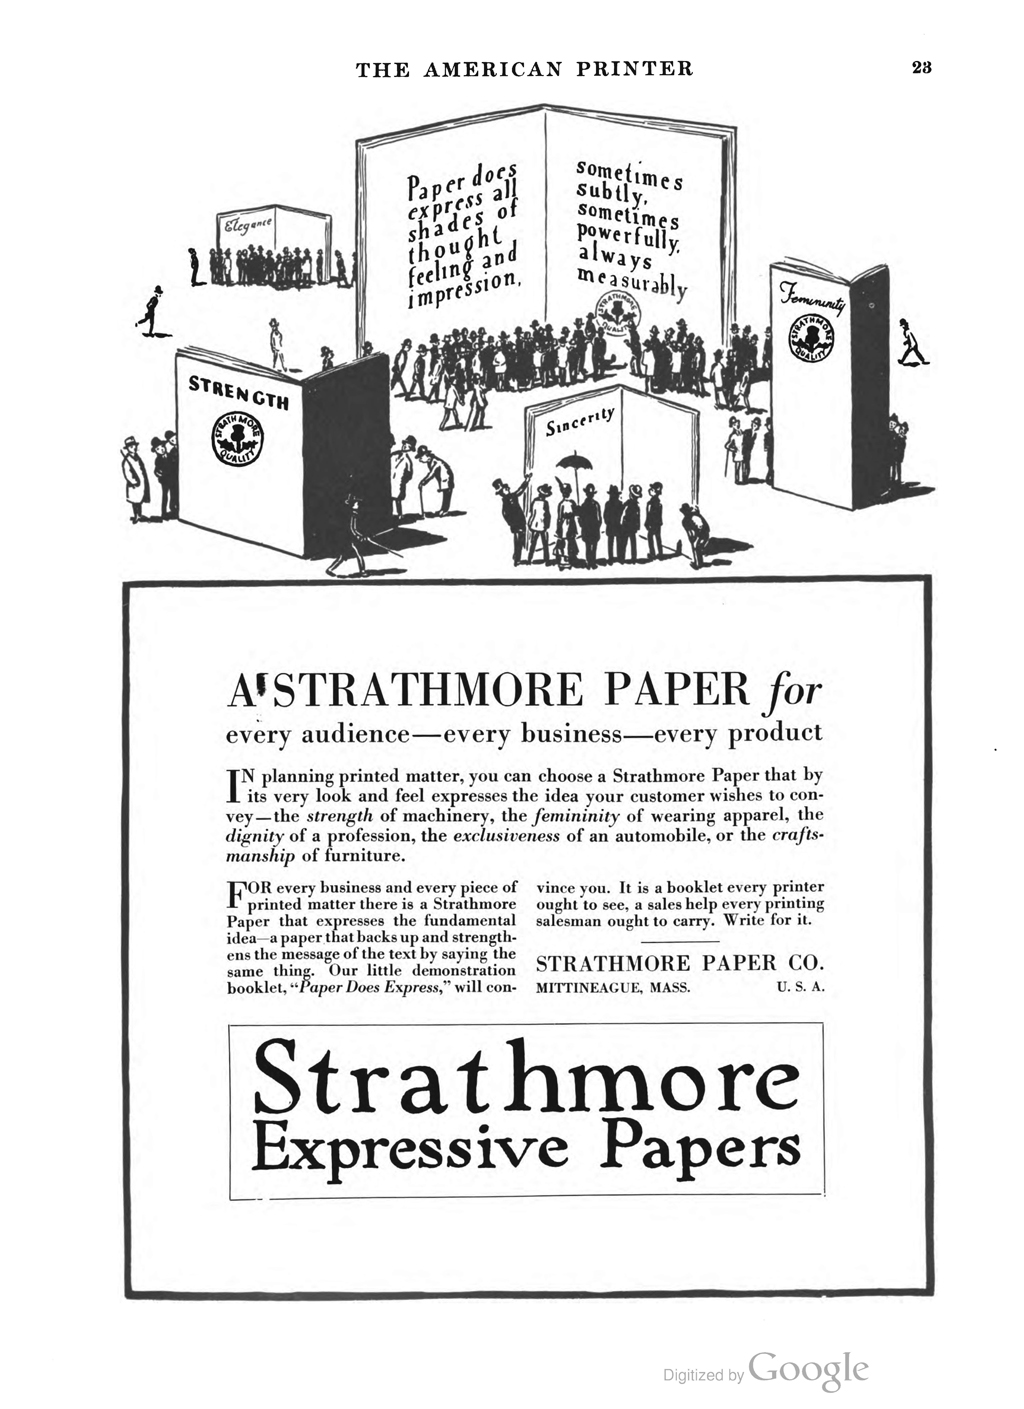 """Strathmore Expressive Papers"" advertisement in The American Printer vol. 62, no. 5 (March 5, 1916)."